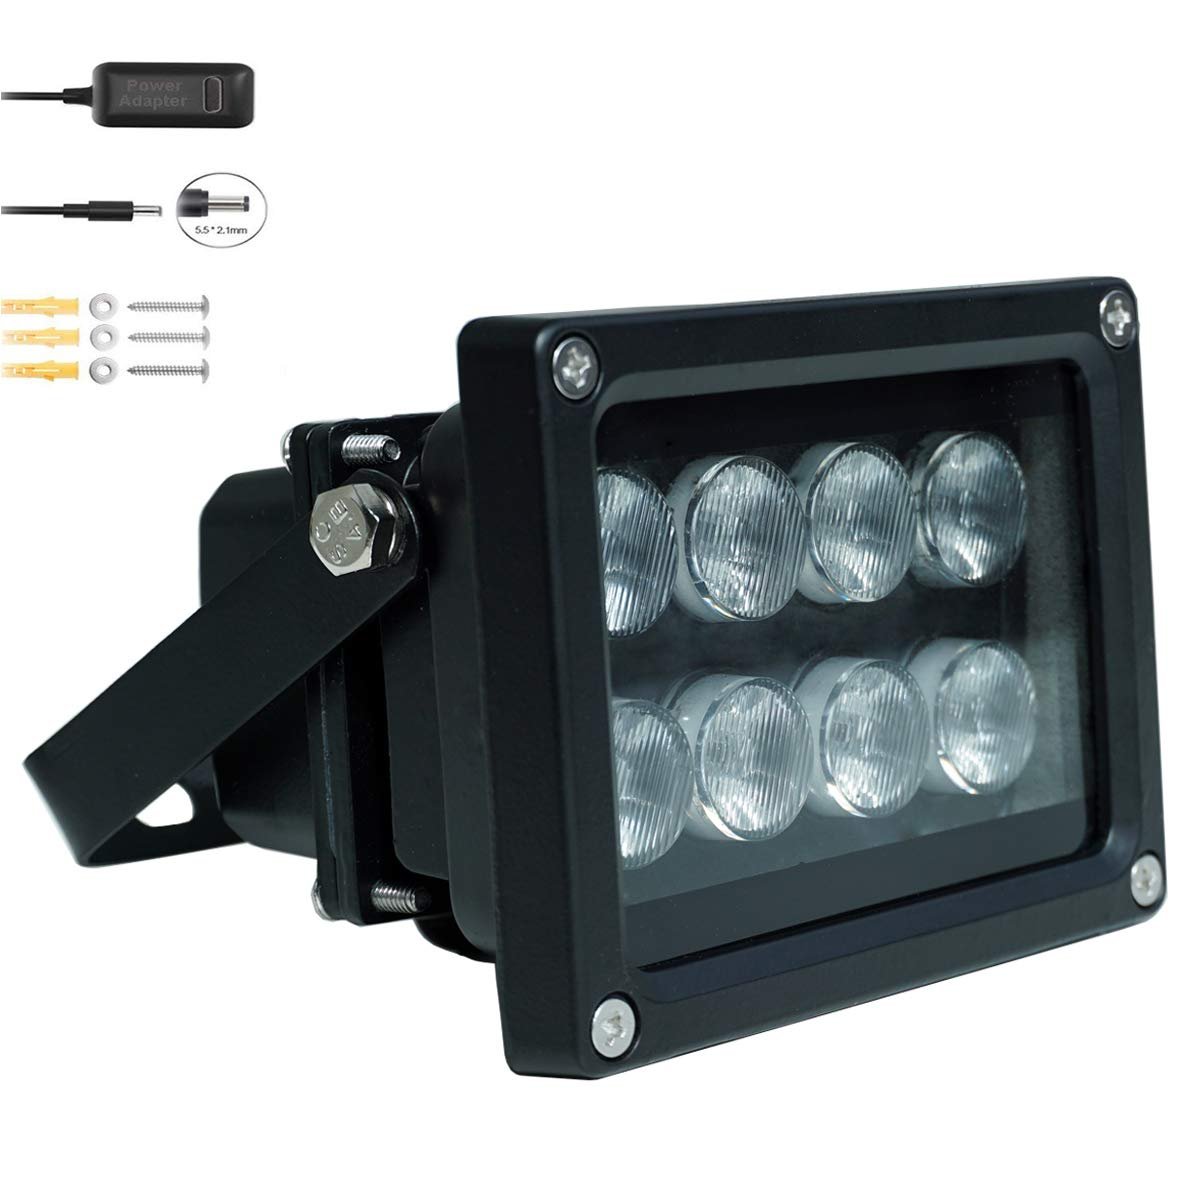 JC IR Illuminator 8-Led Infrared Light Wide Angle 90°with Power Adapter for Security Cameras by JCHENG SECURITY